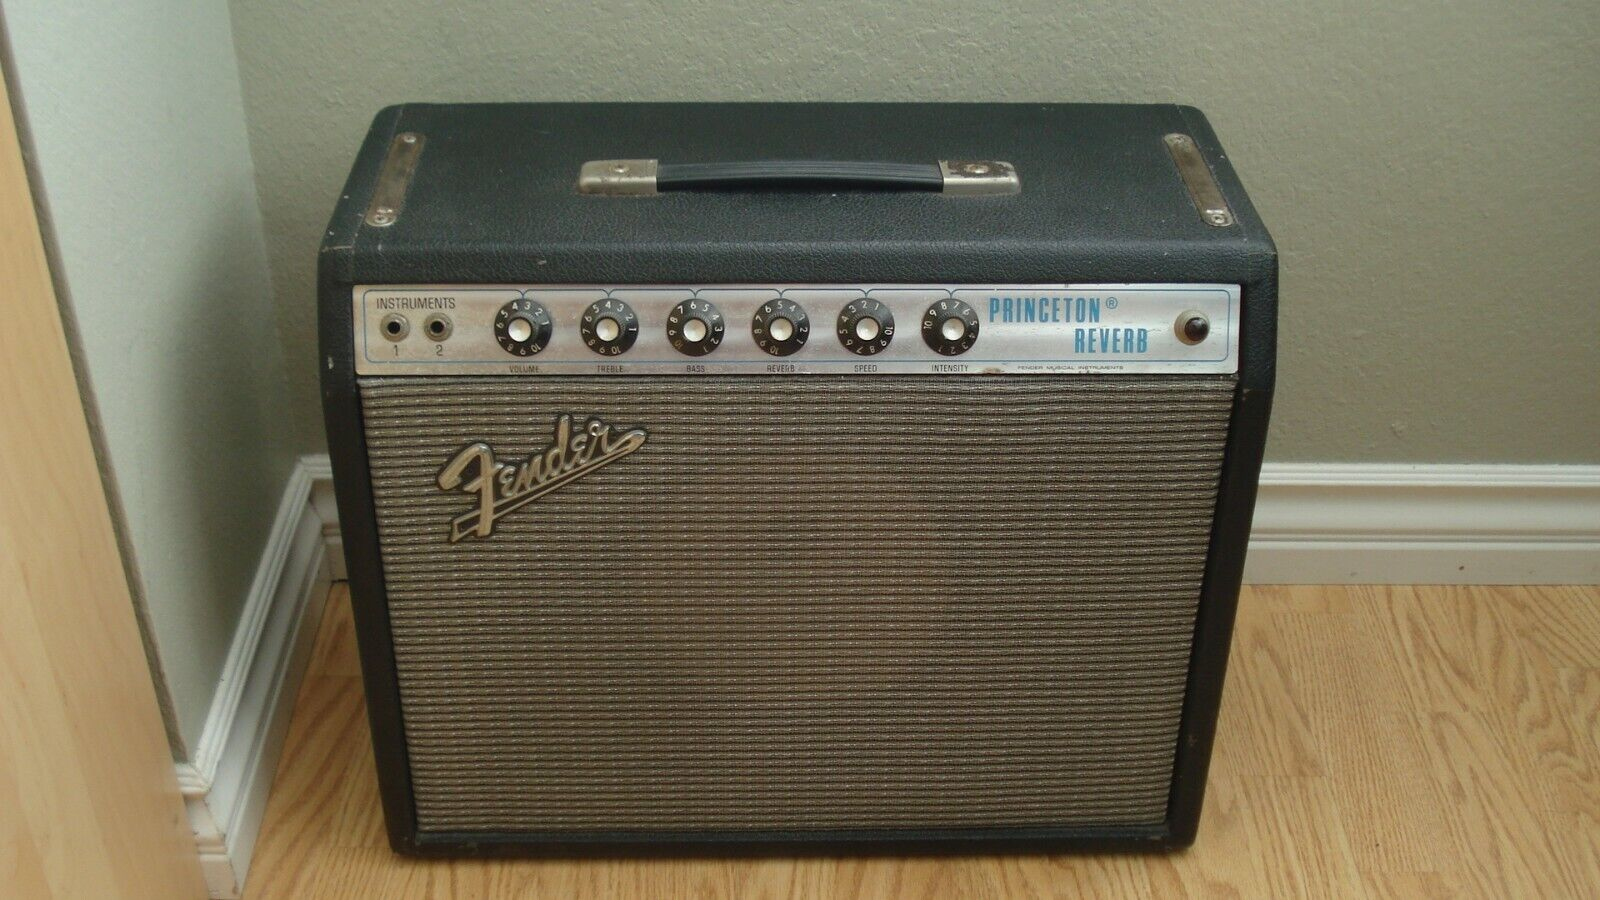 Vintage 1973 Fender Princeton Reverb Amp Newly Serviced Sounds Awesome  - $1,699.99